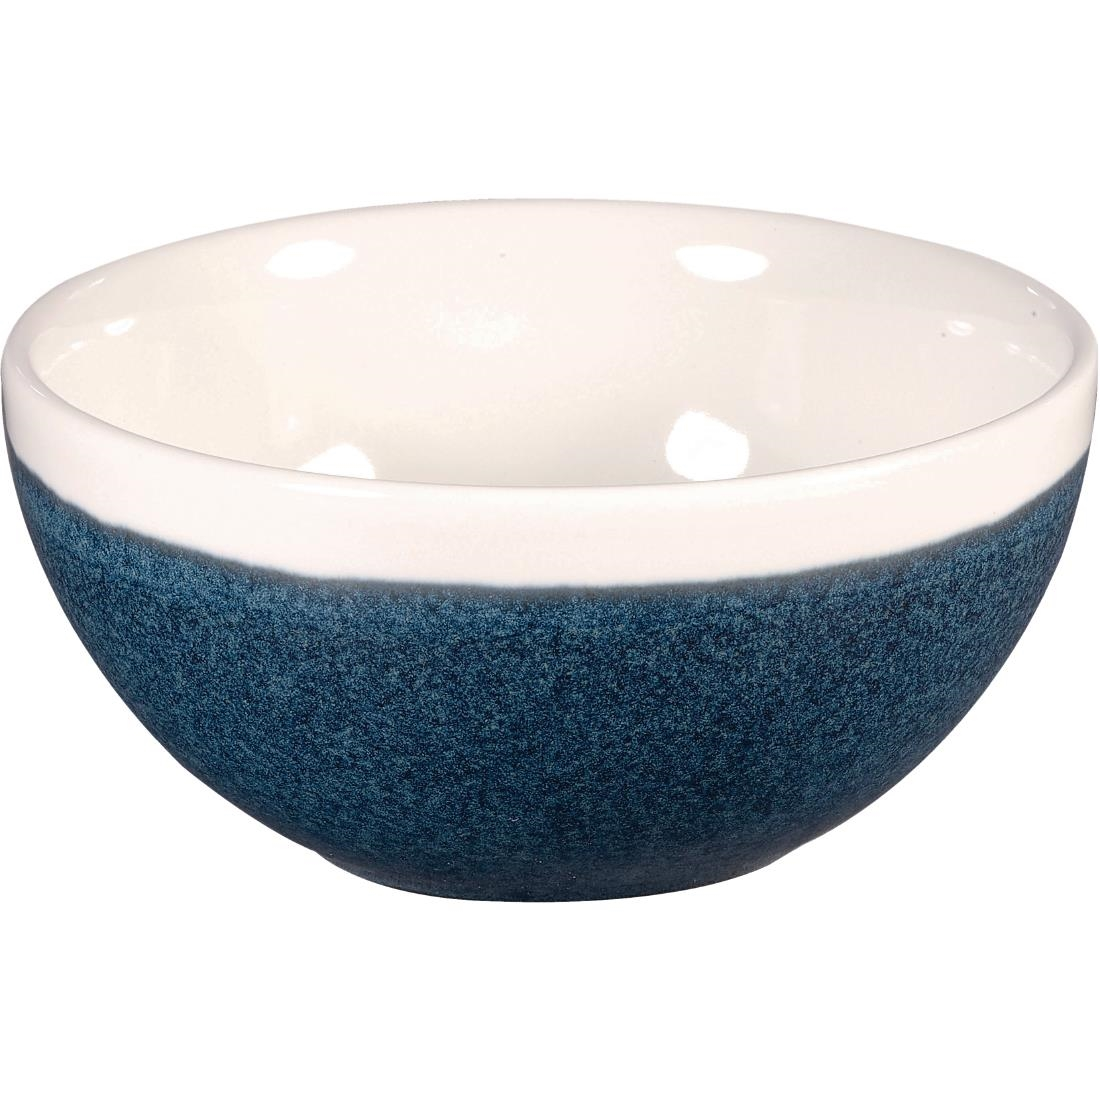 Click to view product details and reviews for Churchill Monochrome Soup Bowl Sapphire Blue 160mm Pack Of 12 Pack Of 12.